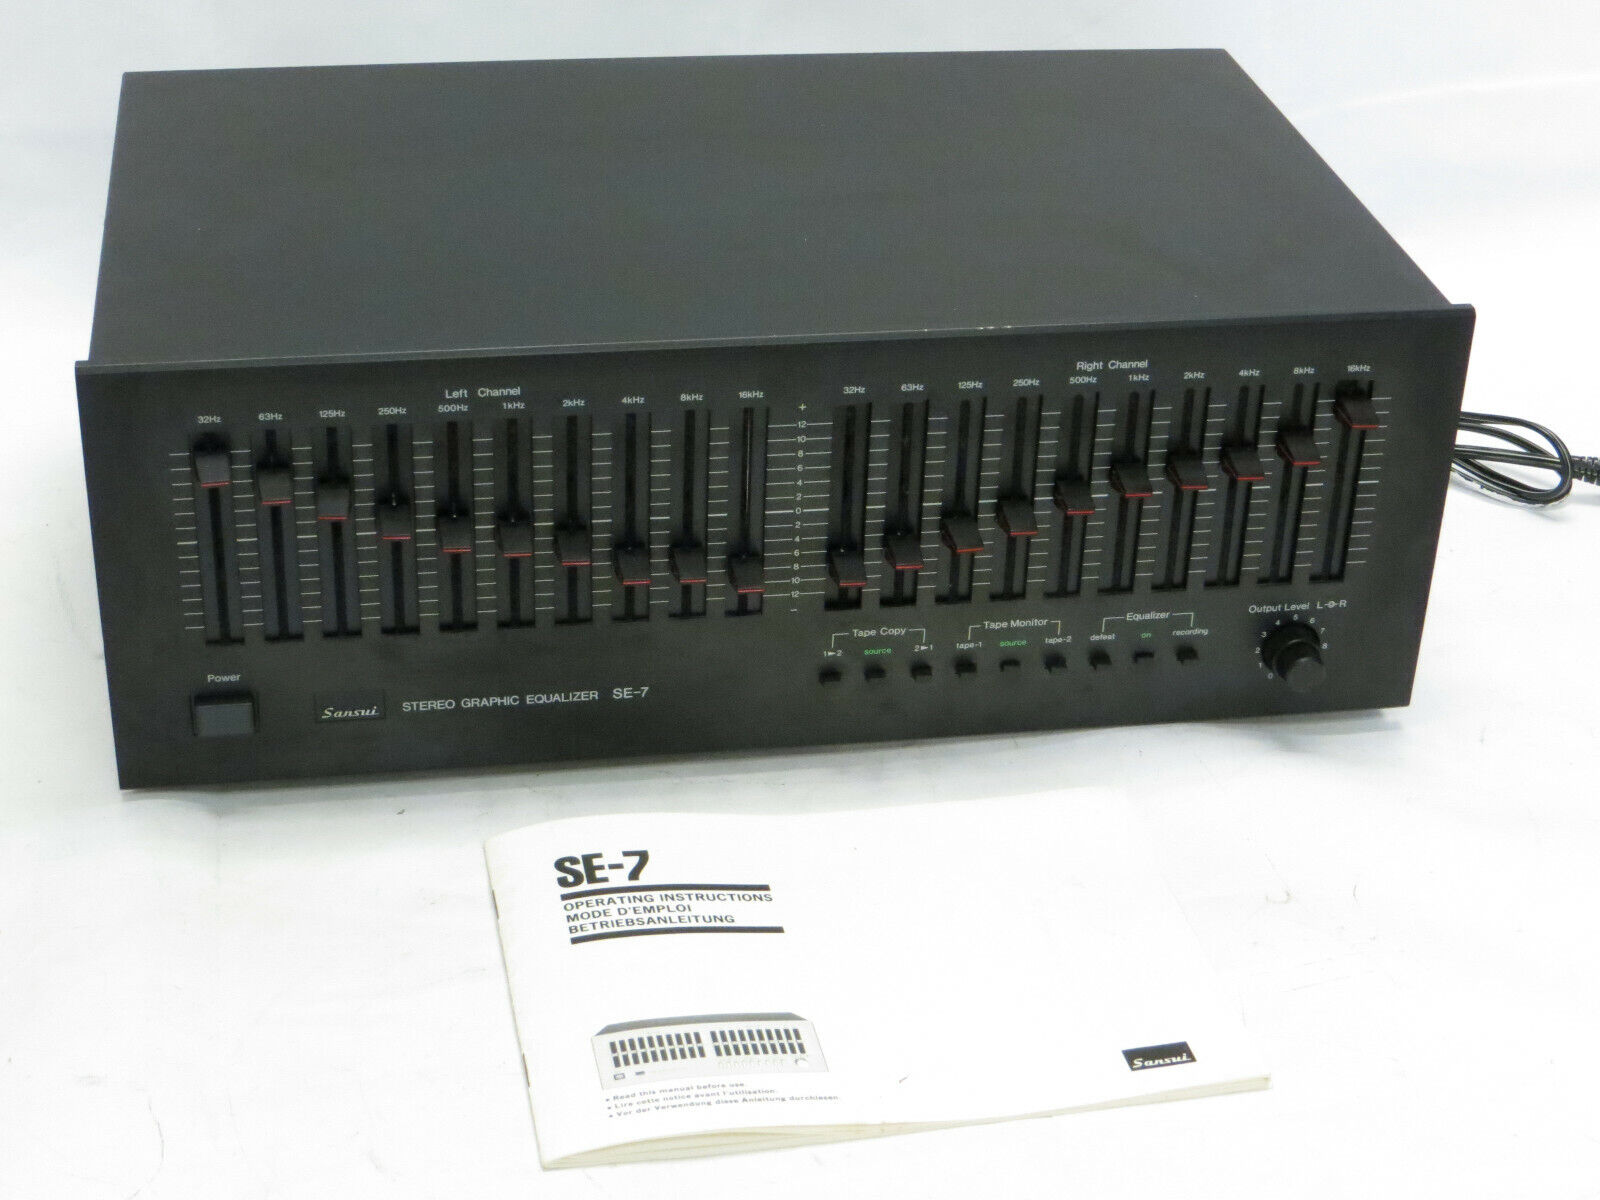 Sansui SE-7 Stereo Graphic Equalizer. Buy it now for 299.95